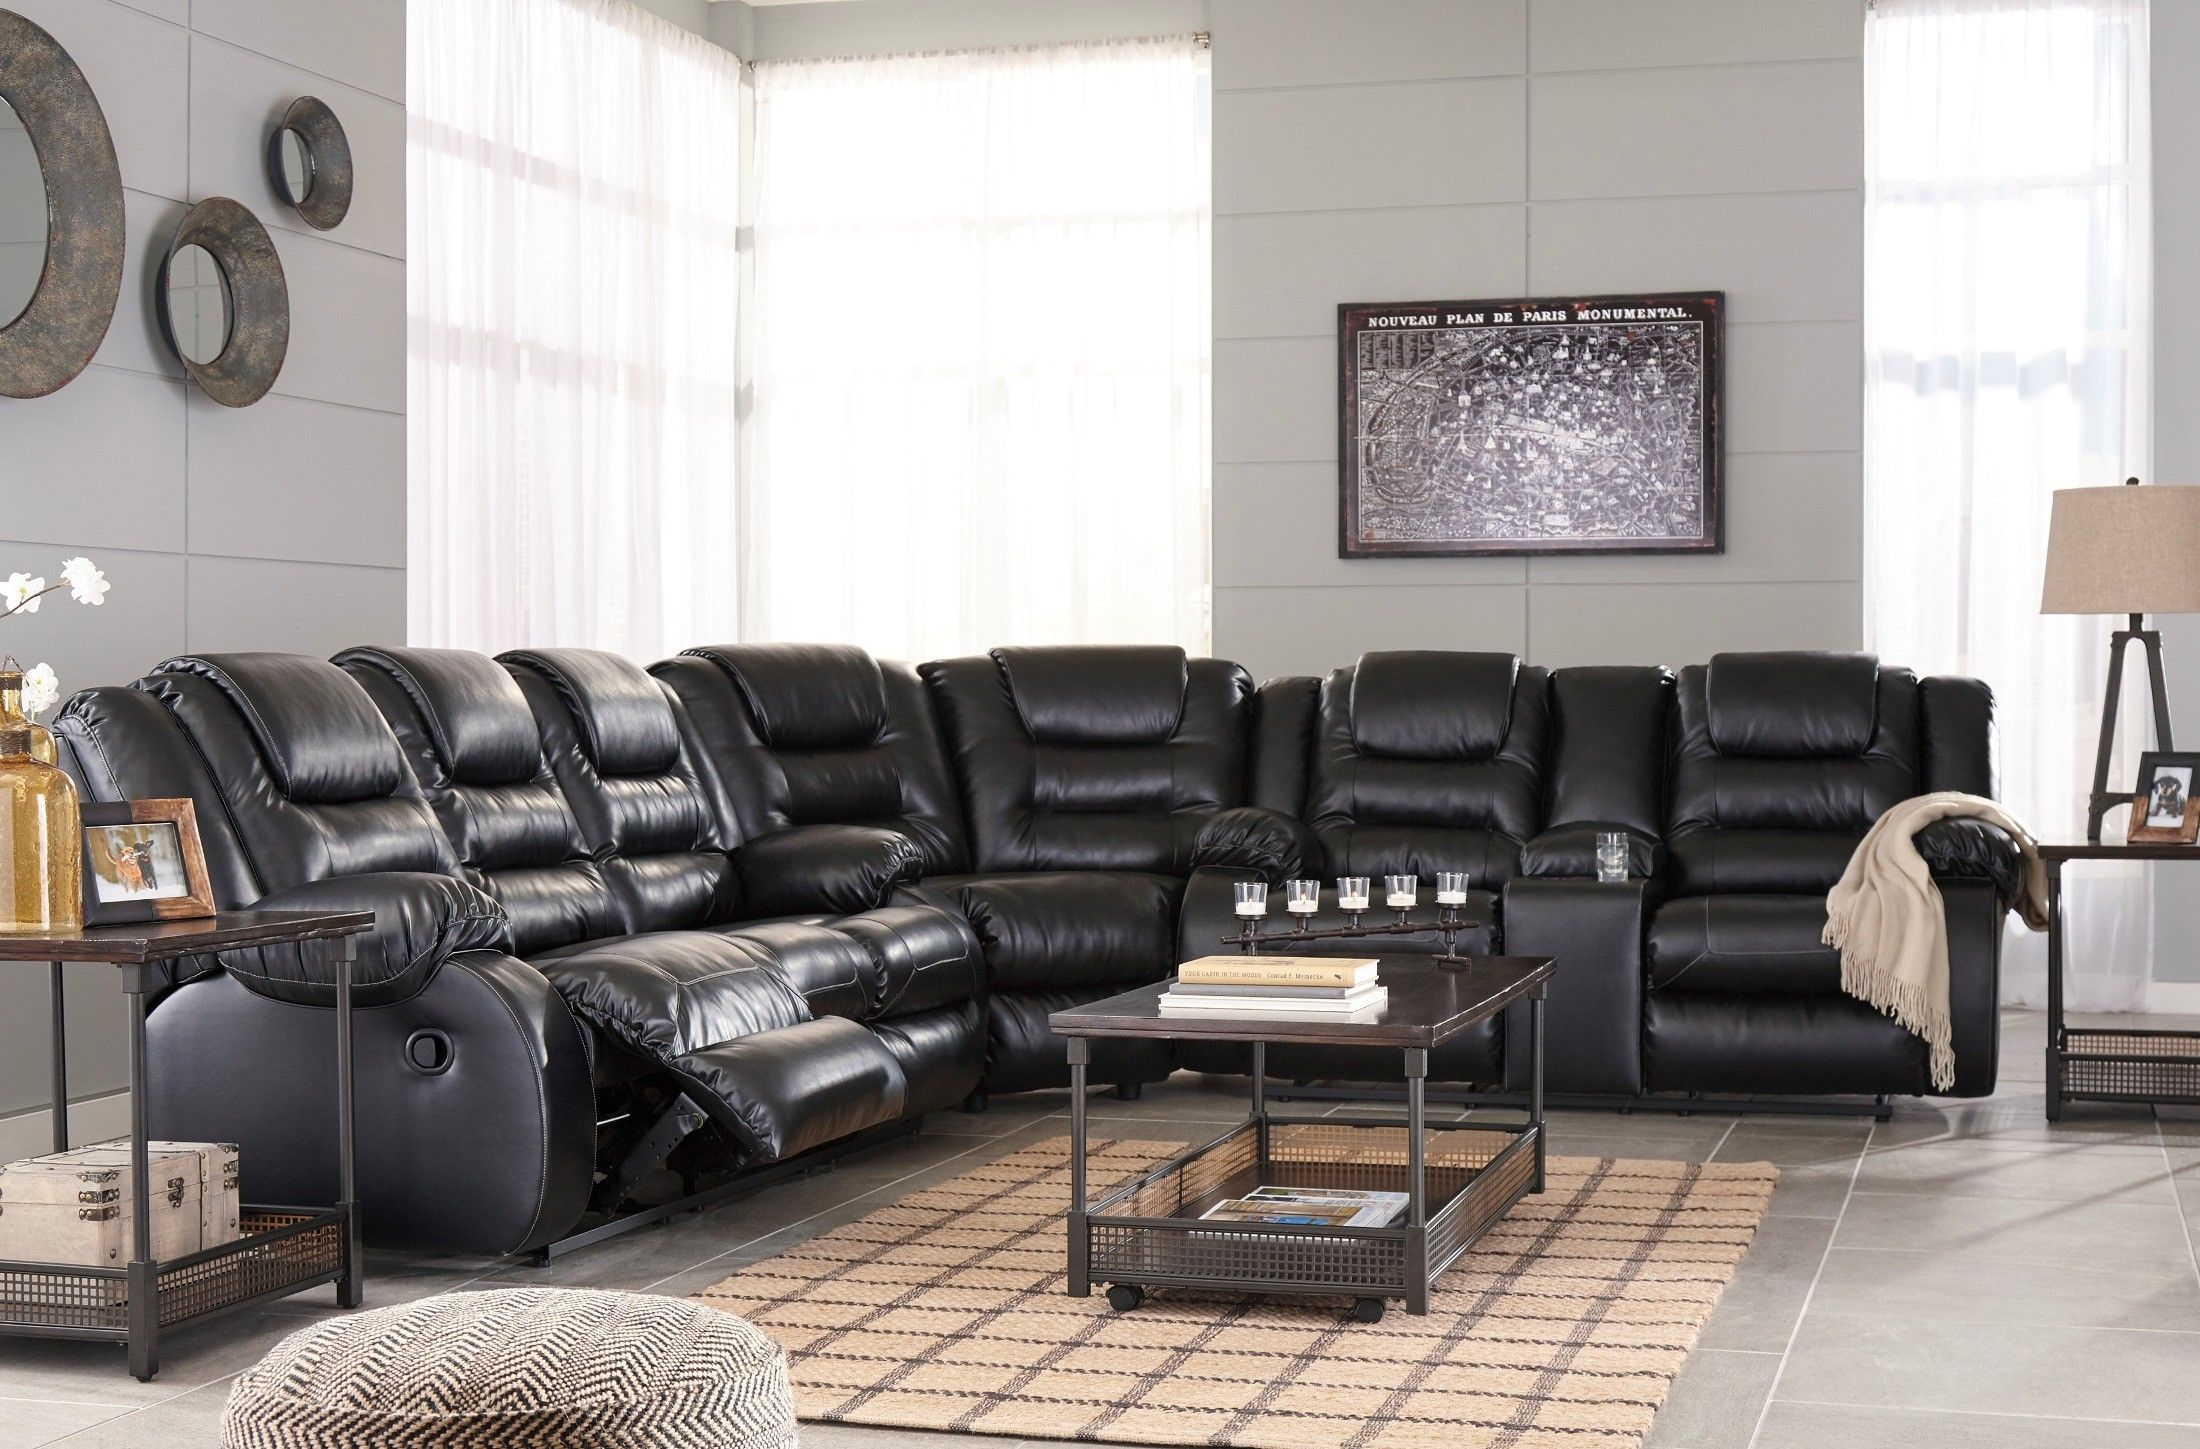 Vacherie Black Double Reclining Sectional In 2020 Reclining Sectional 3 Piece Sectional Sofa Sectional Sofa With Recliner